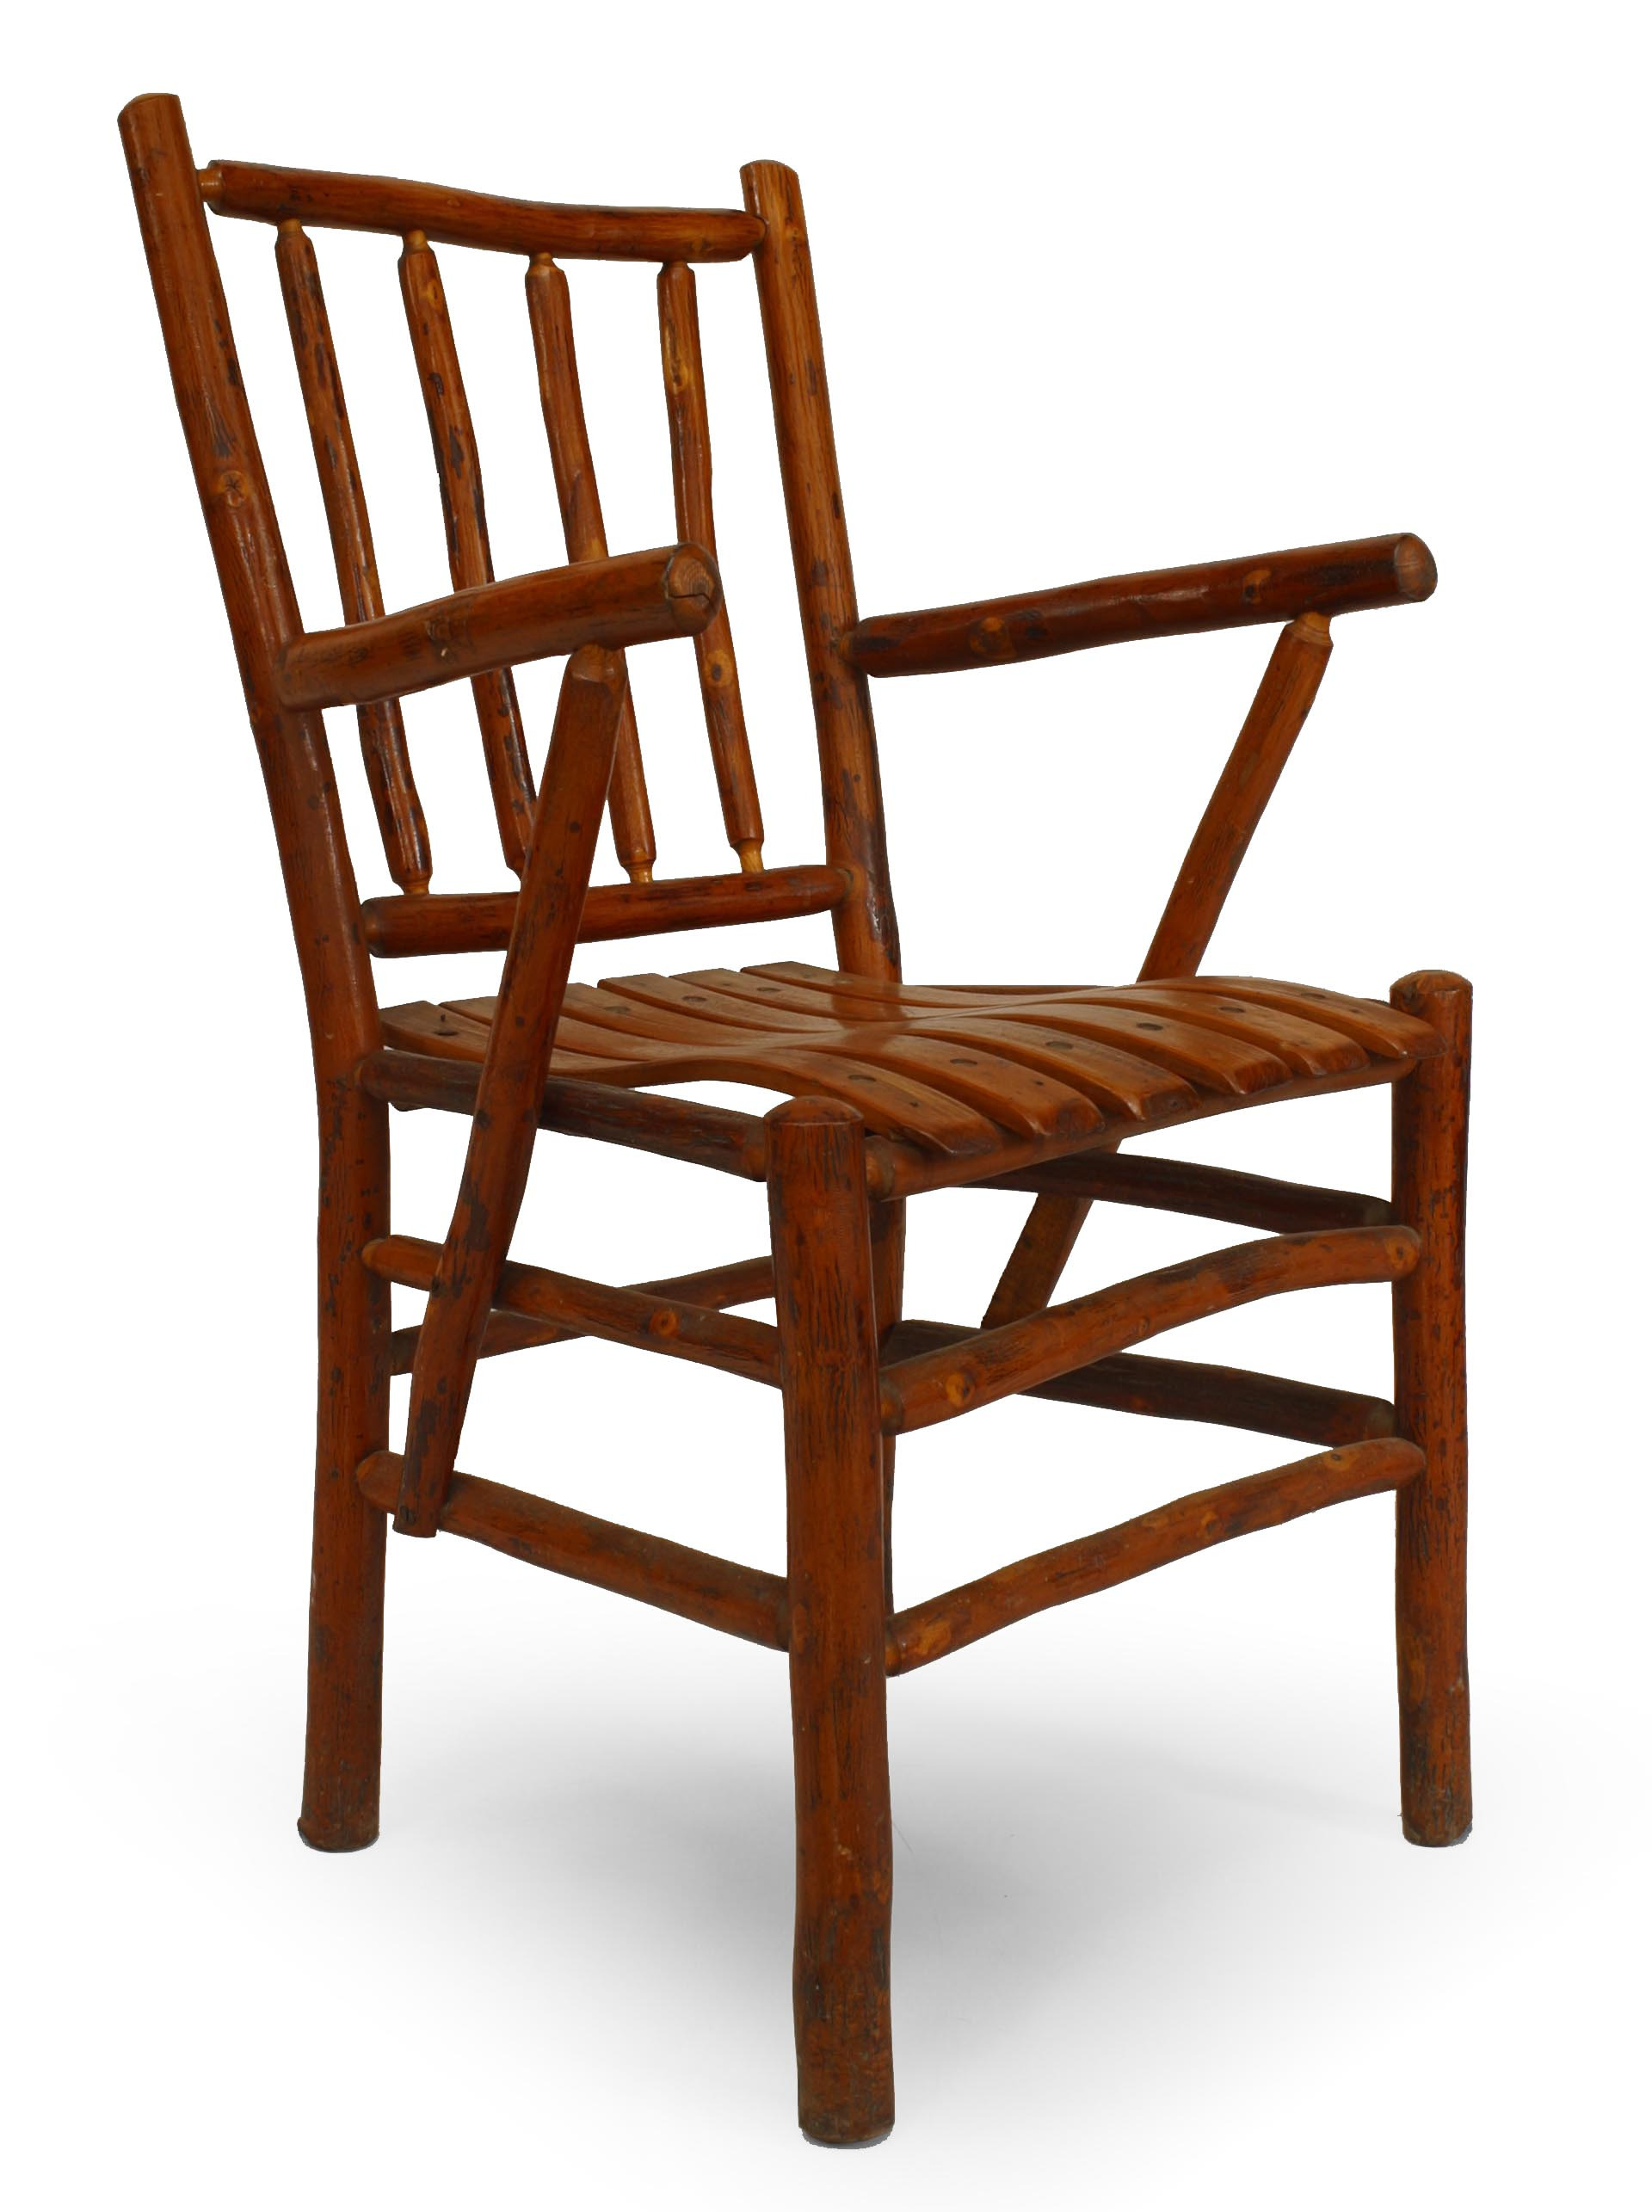 seating chair set Rustic Old Hickory 05